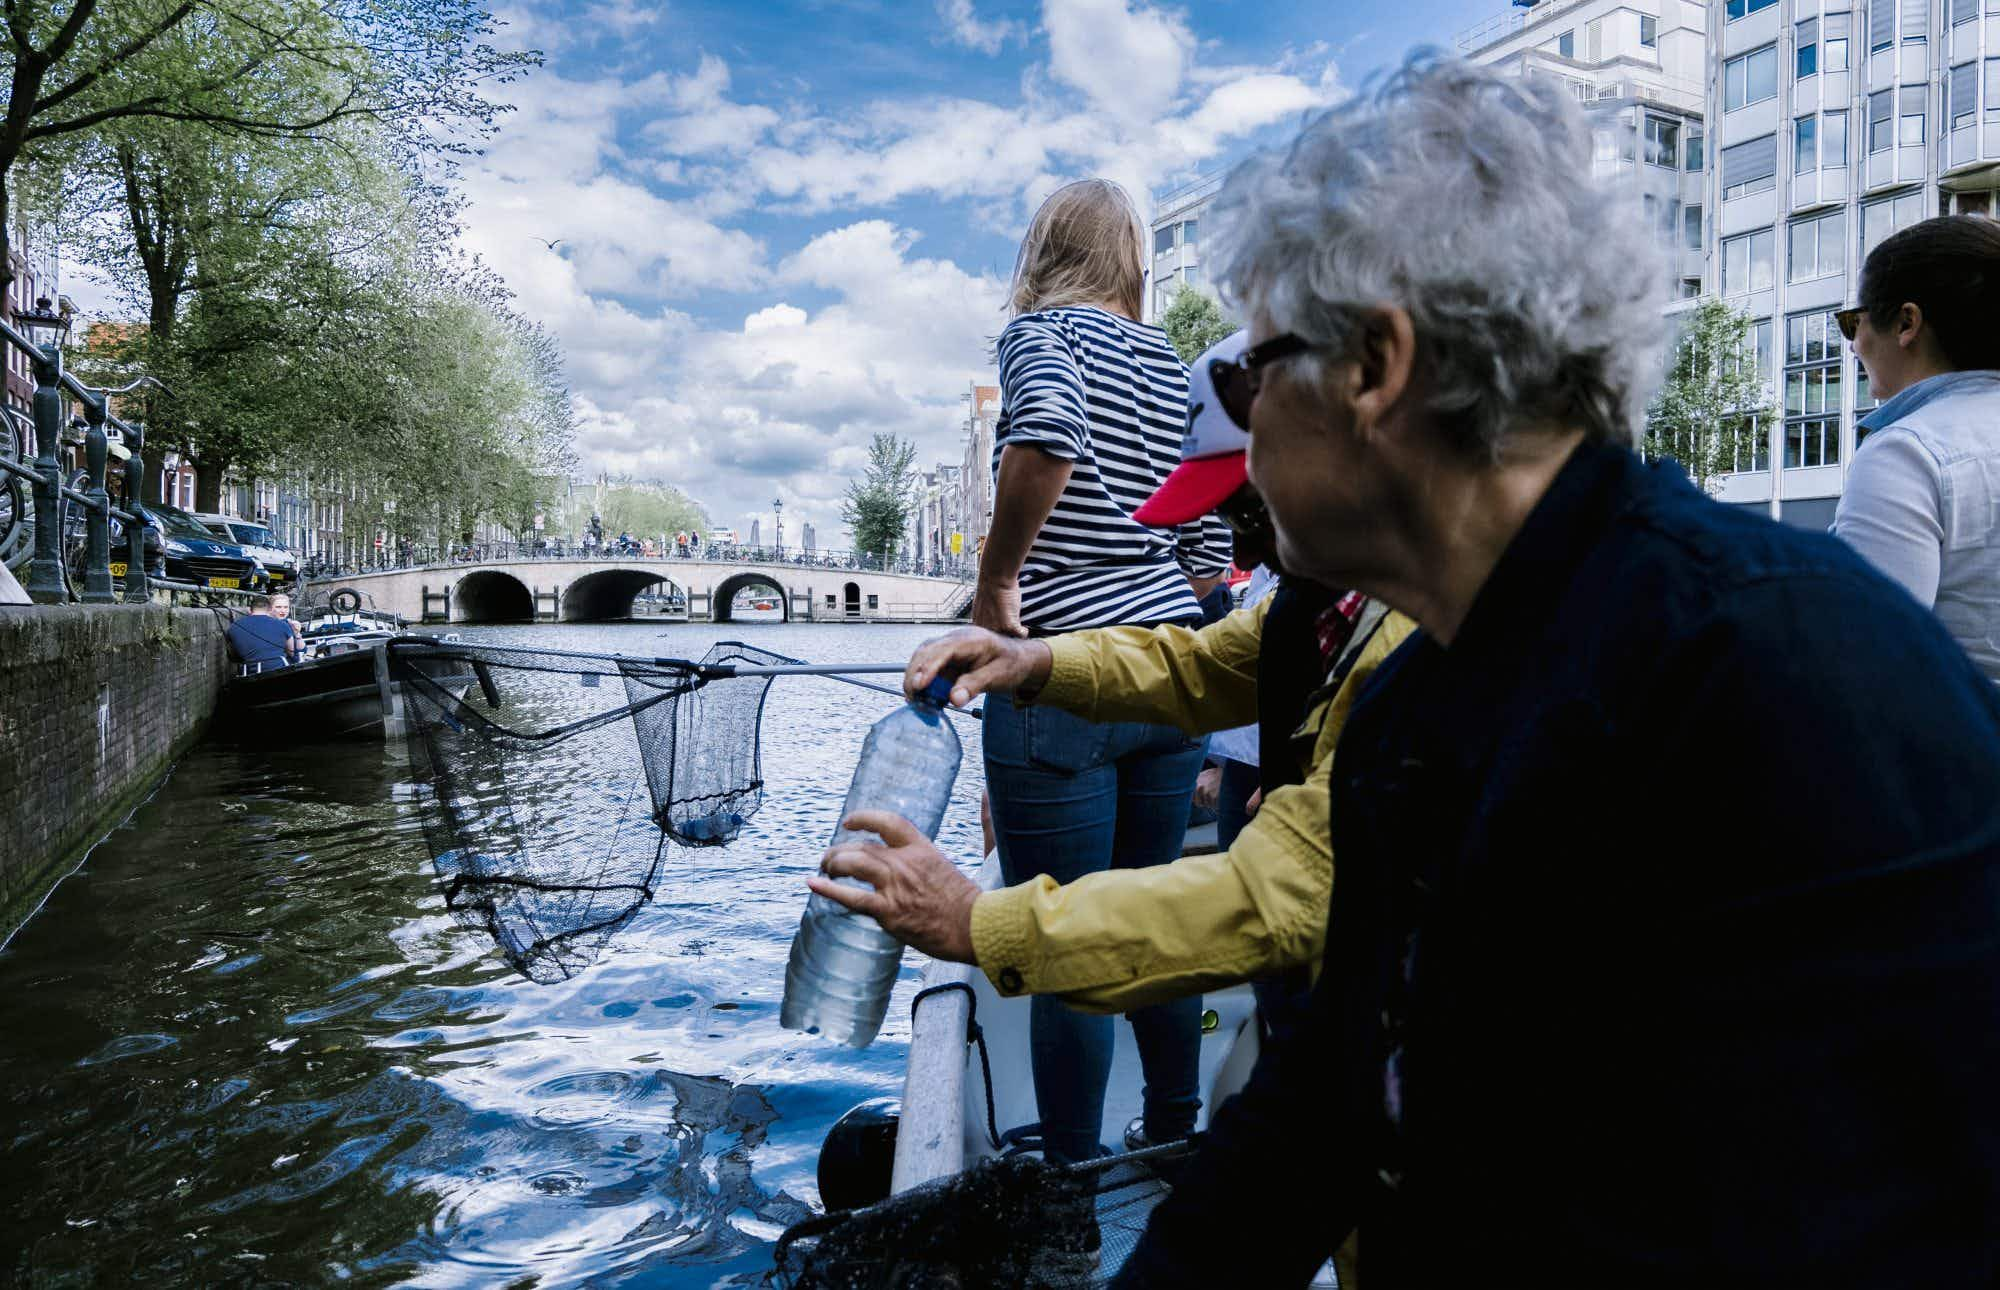 This company shows you the sights of Amsterdam while fishing for plastic